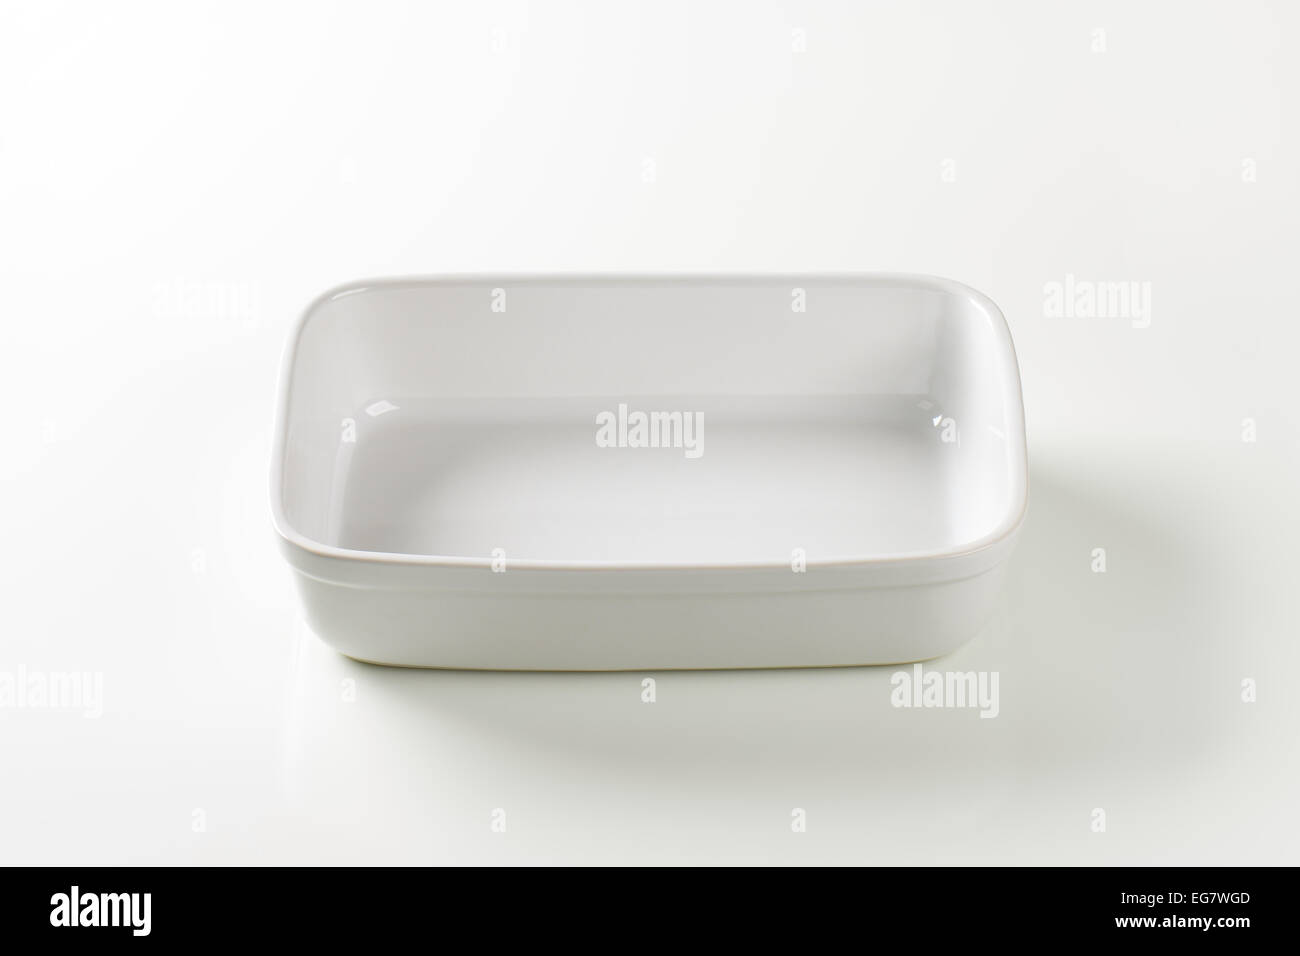 Deep oblong porcelain baking dish - Stock Image